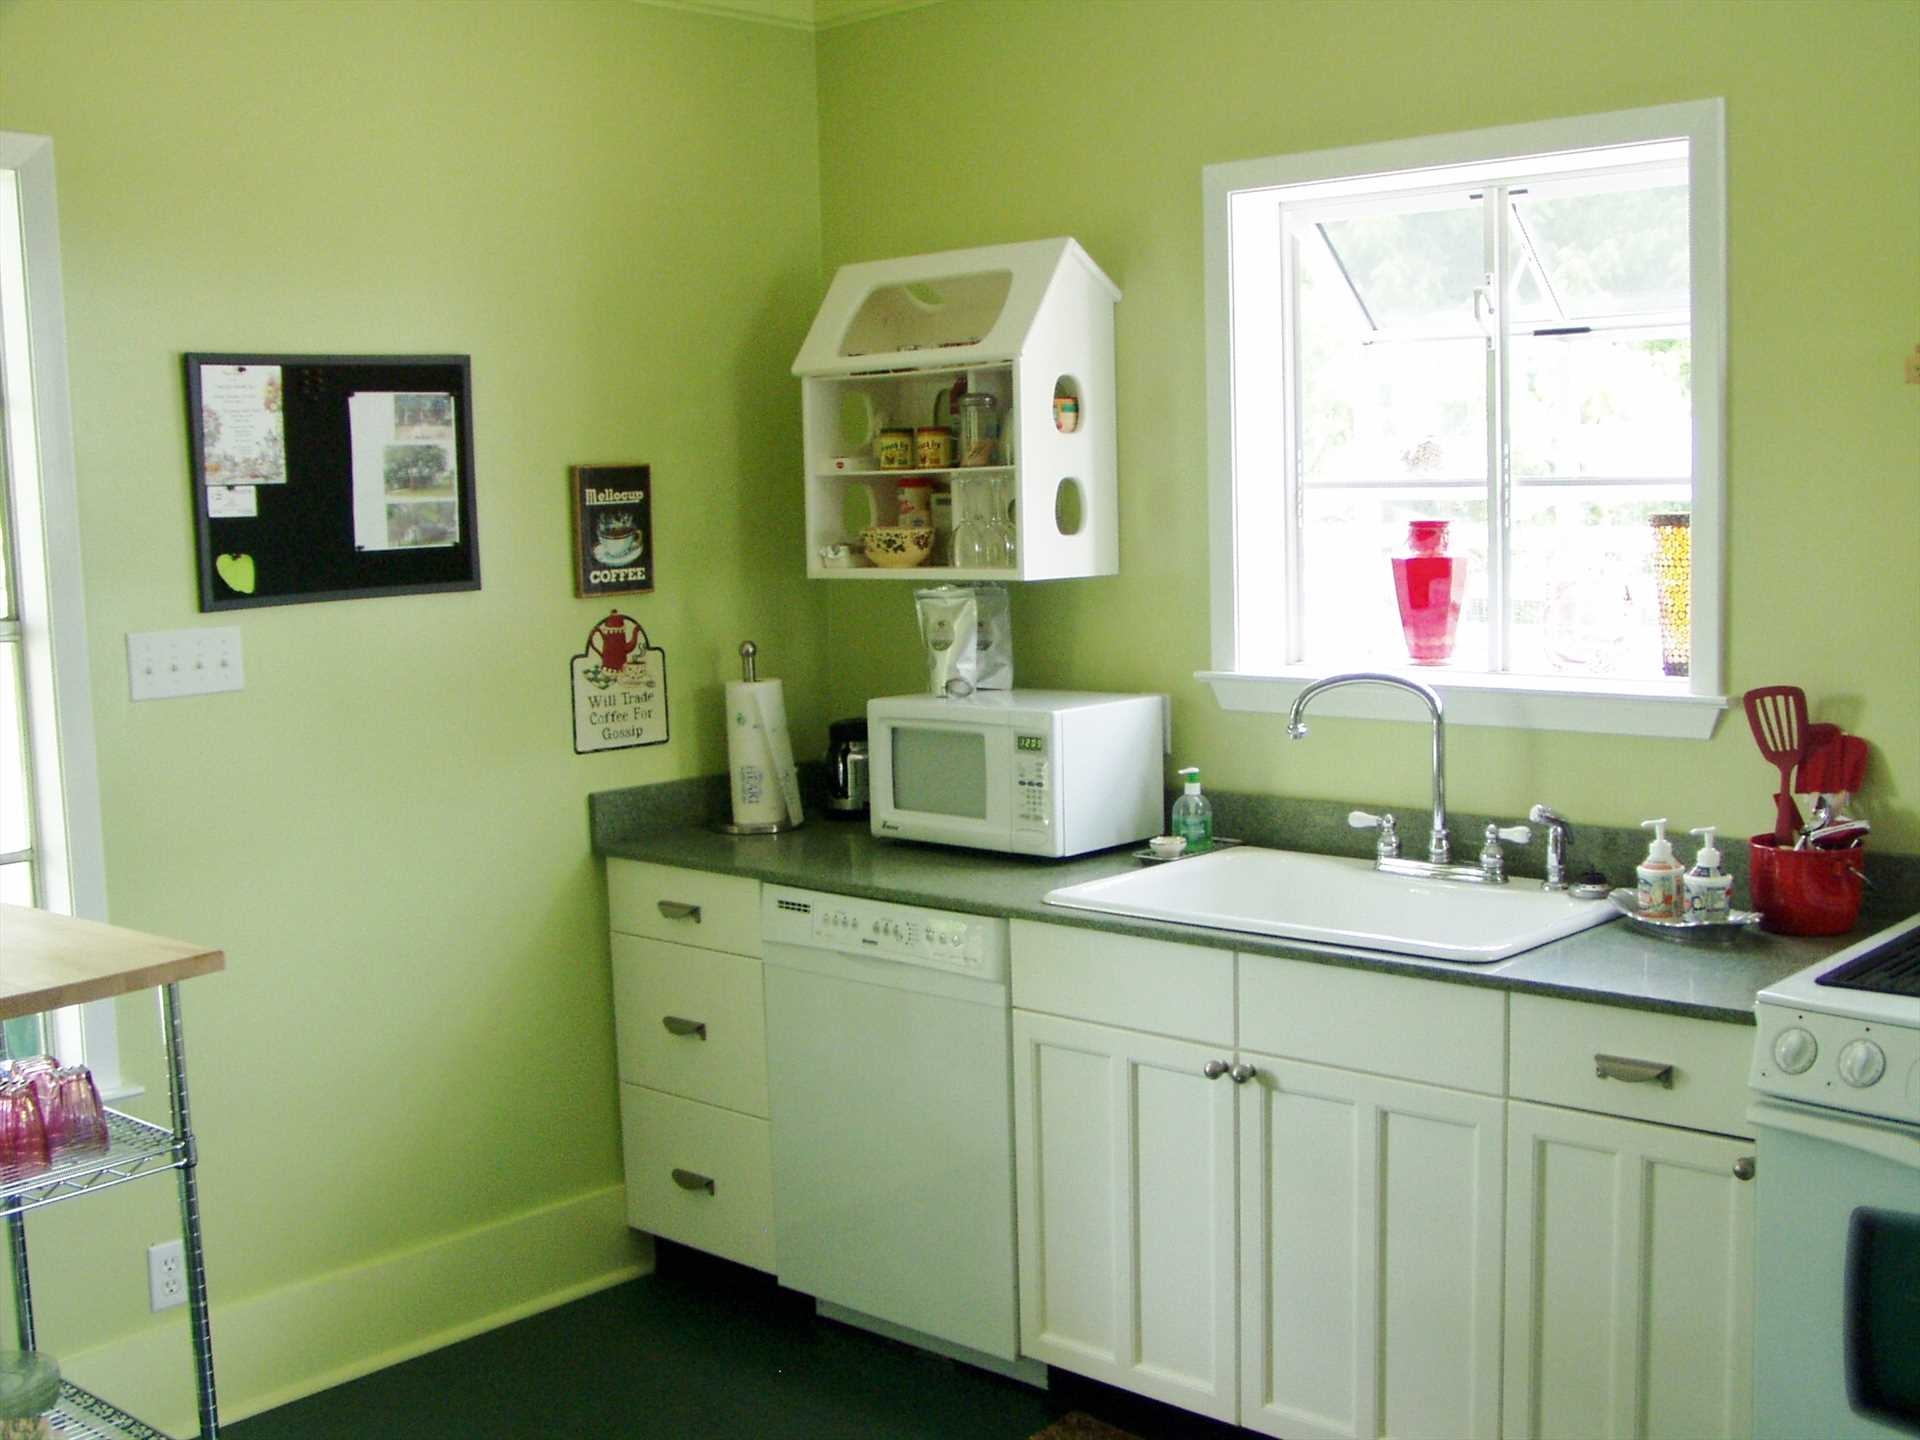 Cooking ware and serving ware are also included here, make some family memories of your own in the homey and functional kitchen.